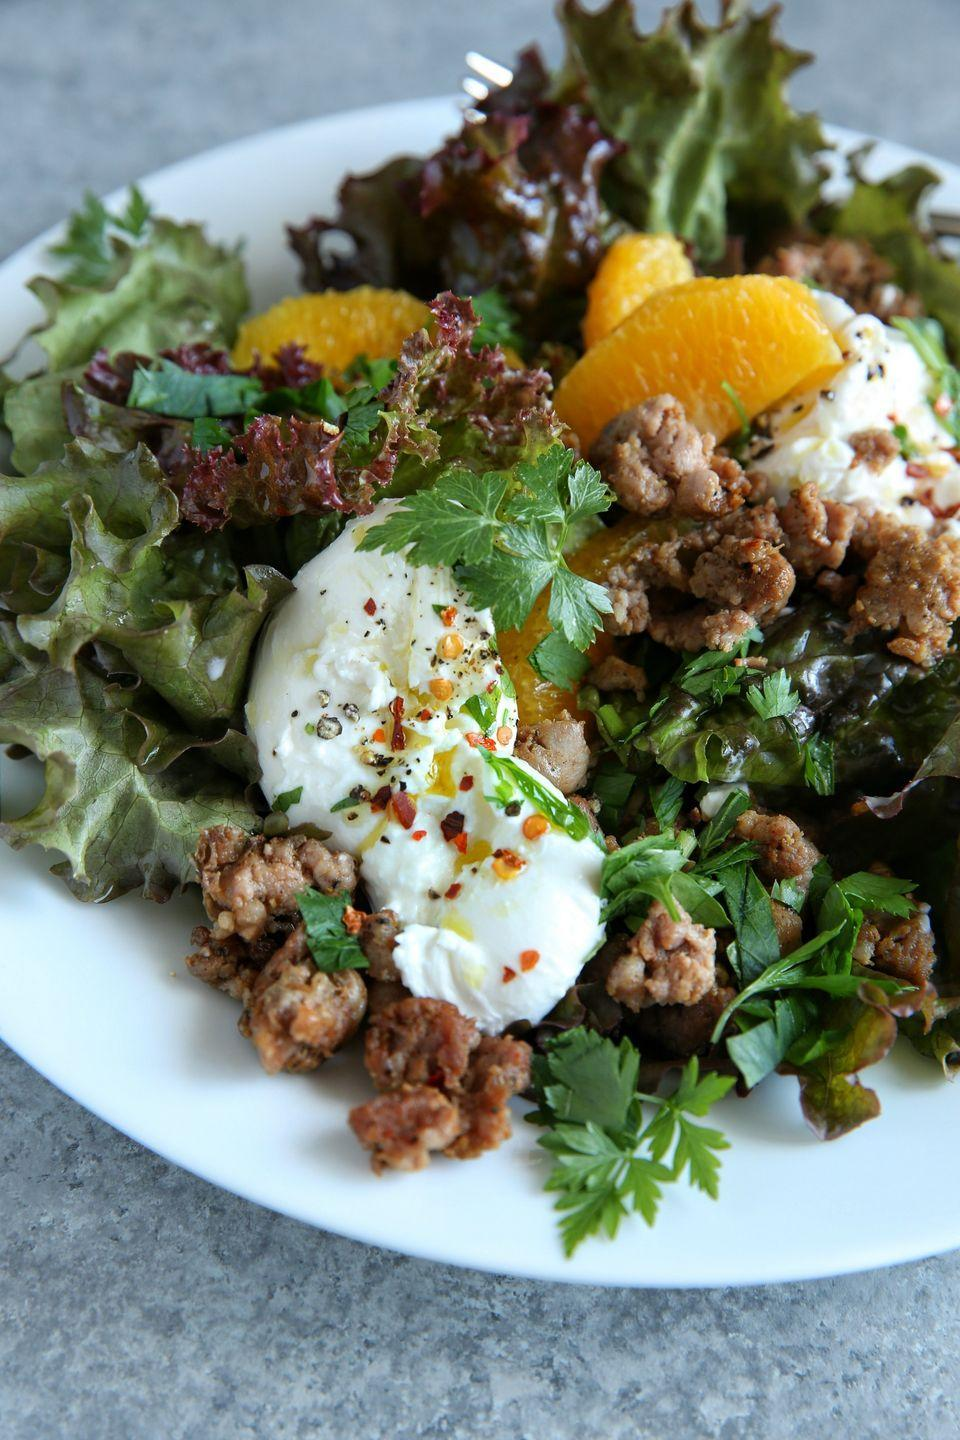 """<p>Greens get a boost from salty, sweet, spicy and creamy fixings.</p><p>Get the recipe from <a href=""""https://www.delish.com/cooking/recipe-ideas/recipes/a48085/crispy-sausage-and-burrata-salad-recipe/"""" rel=""""nofollow noopener"""" target=""""_blank"""" data-ylk=""""slk:Delish"""" class=""""link rapid-noclick-resp"""">Delish</a>.<br></p>"""